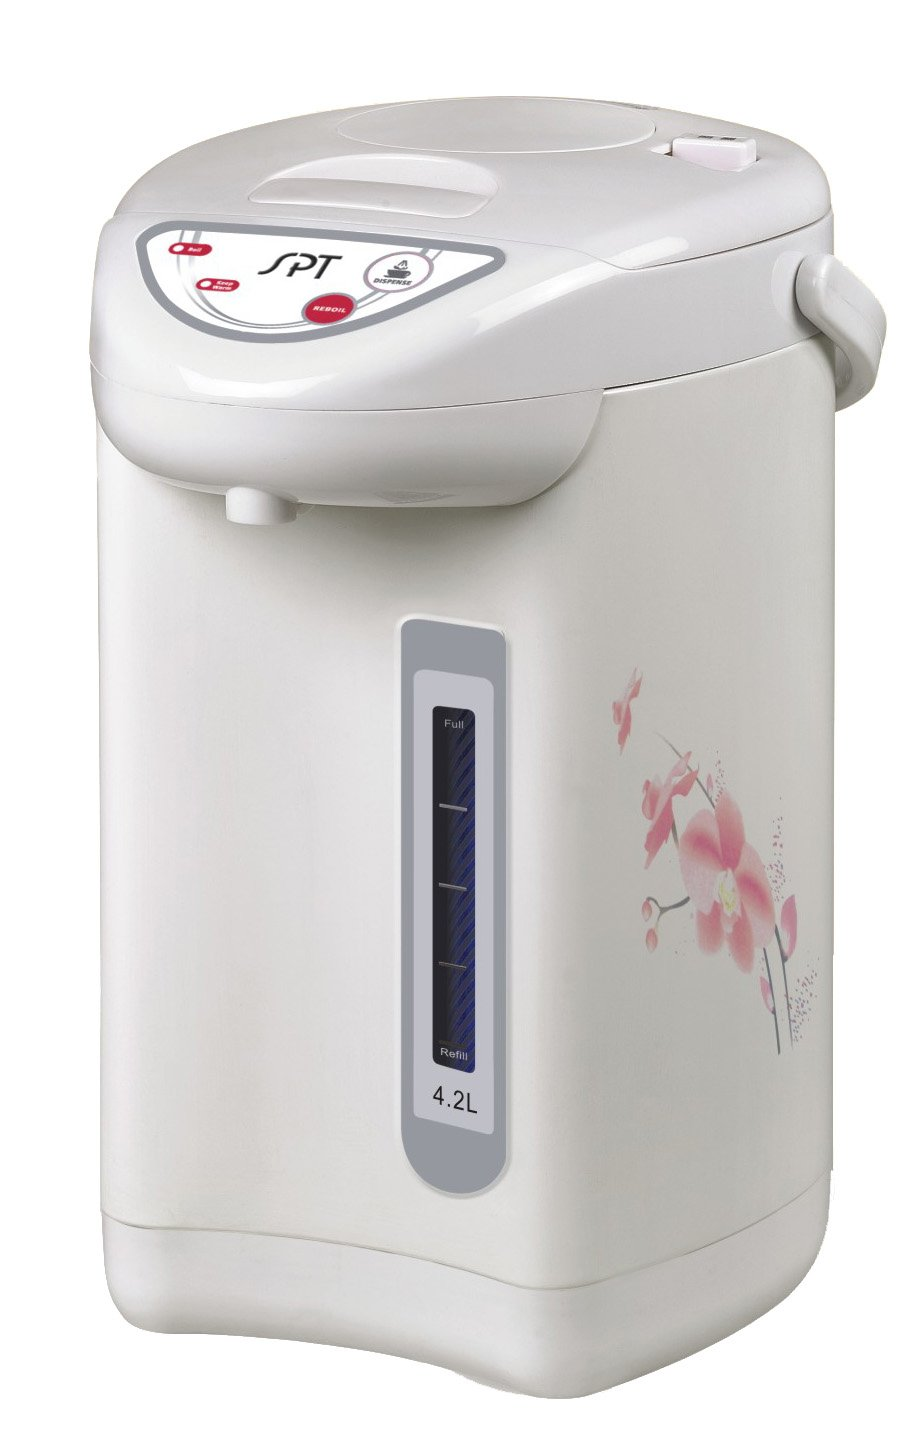 Sunpentown SP-4201 4.2L Hot Water Dispenser with Dual-Pump System, one size, Multi